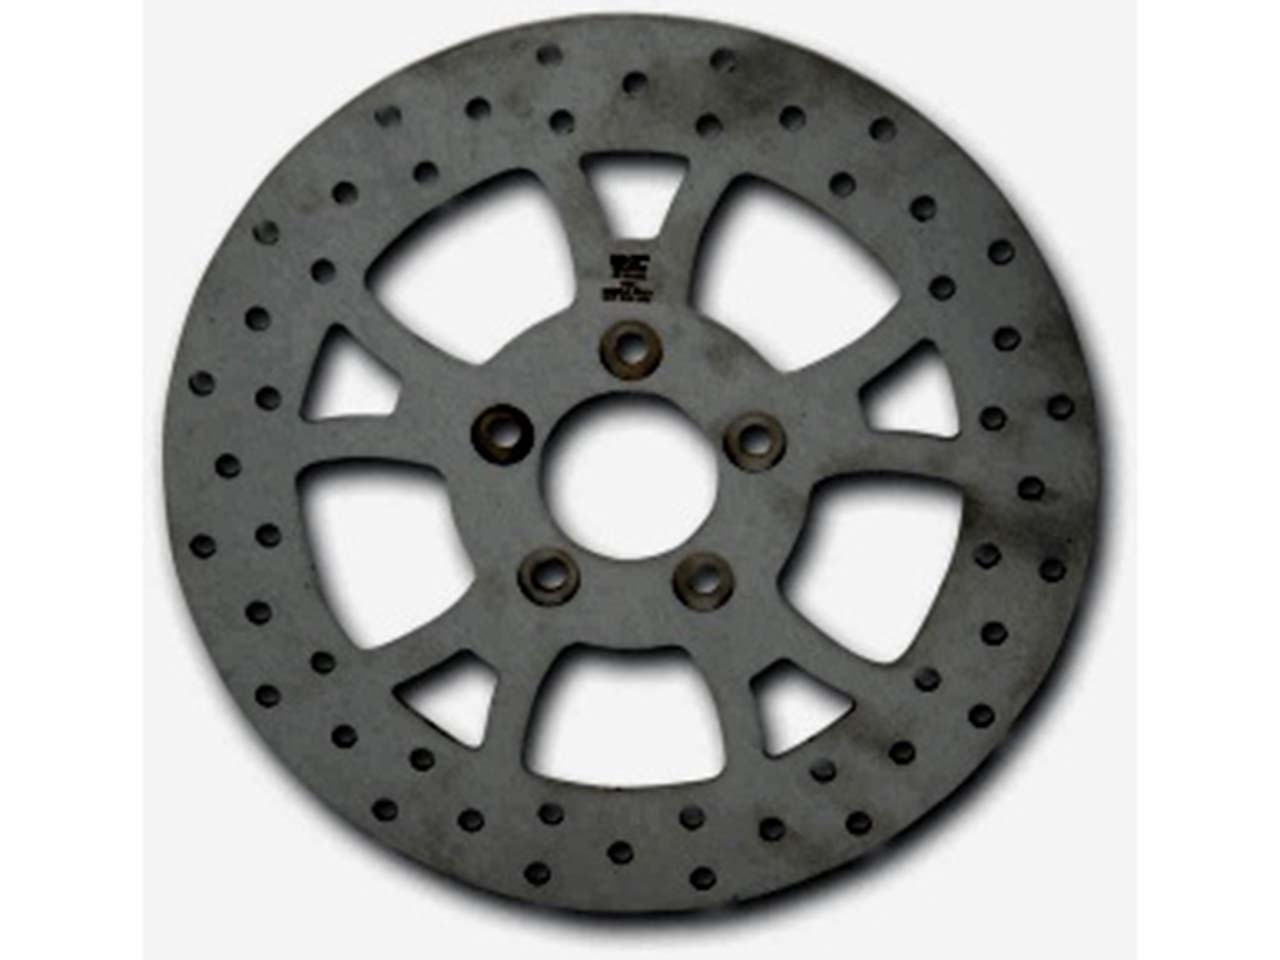 DP Brakes new stainless steel replacement rotors for Harley